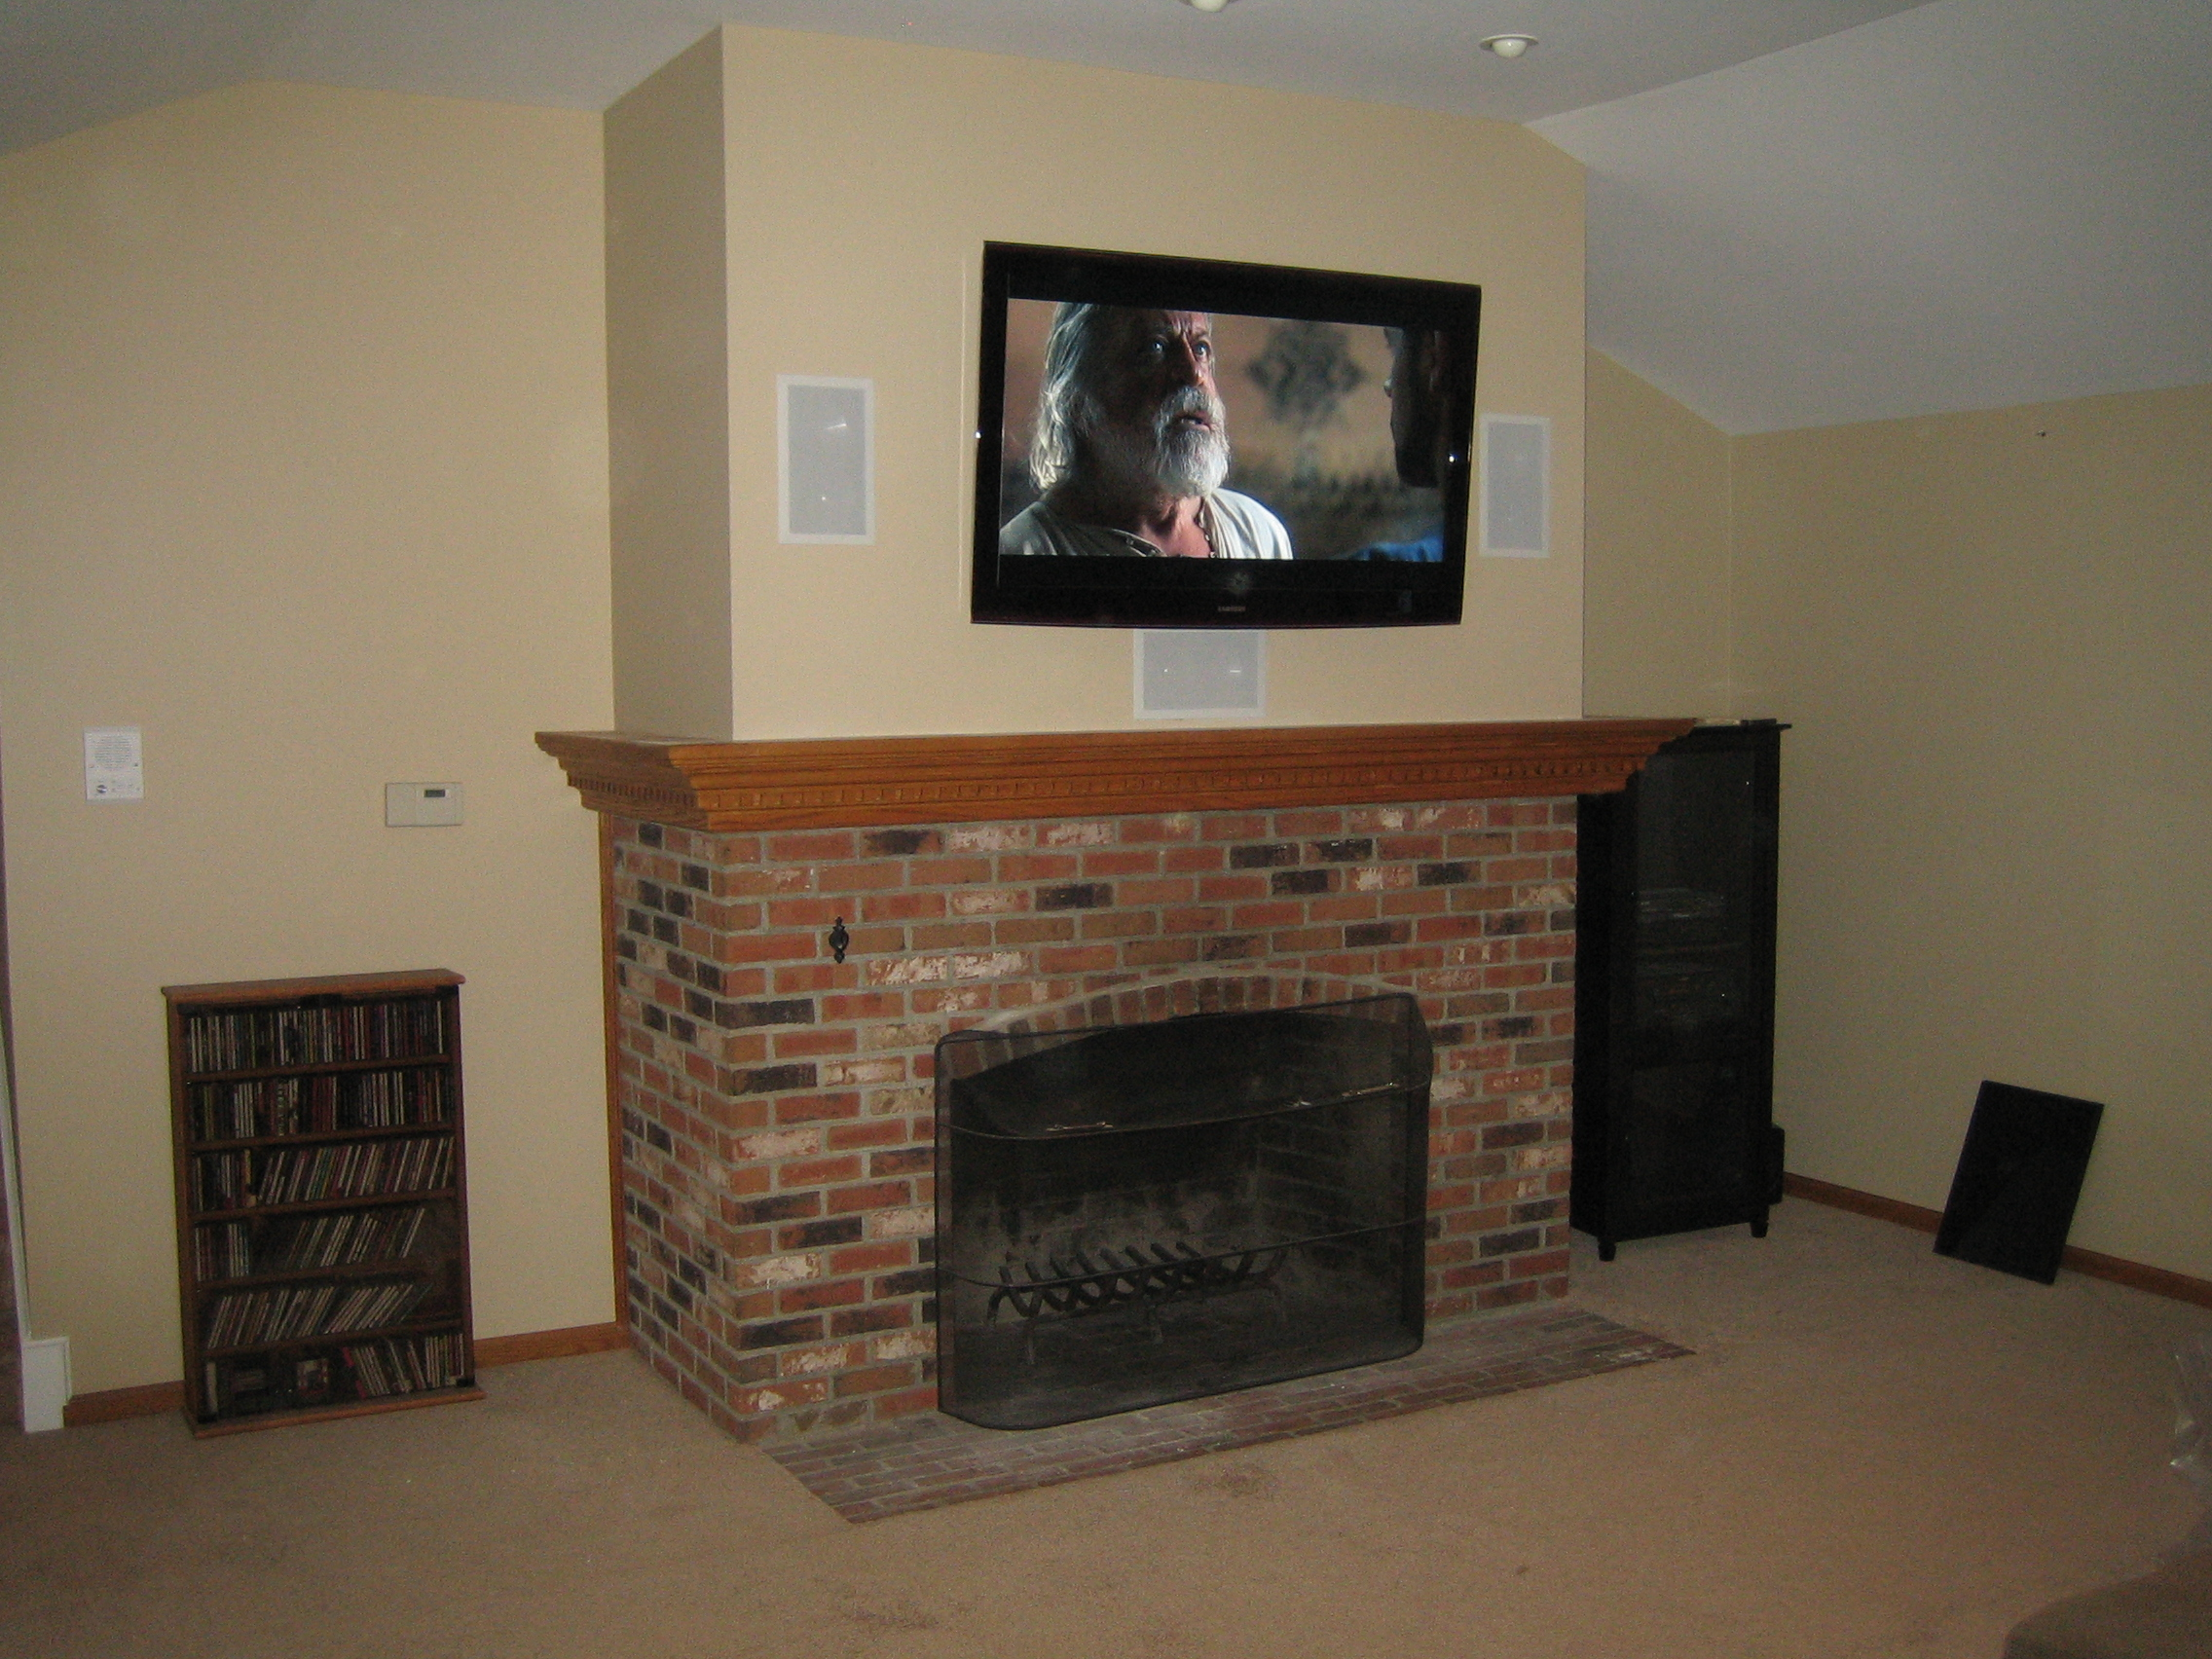 madison ct u2013 tv over fireplace installation home theater